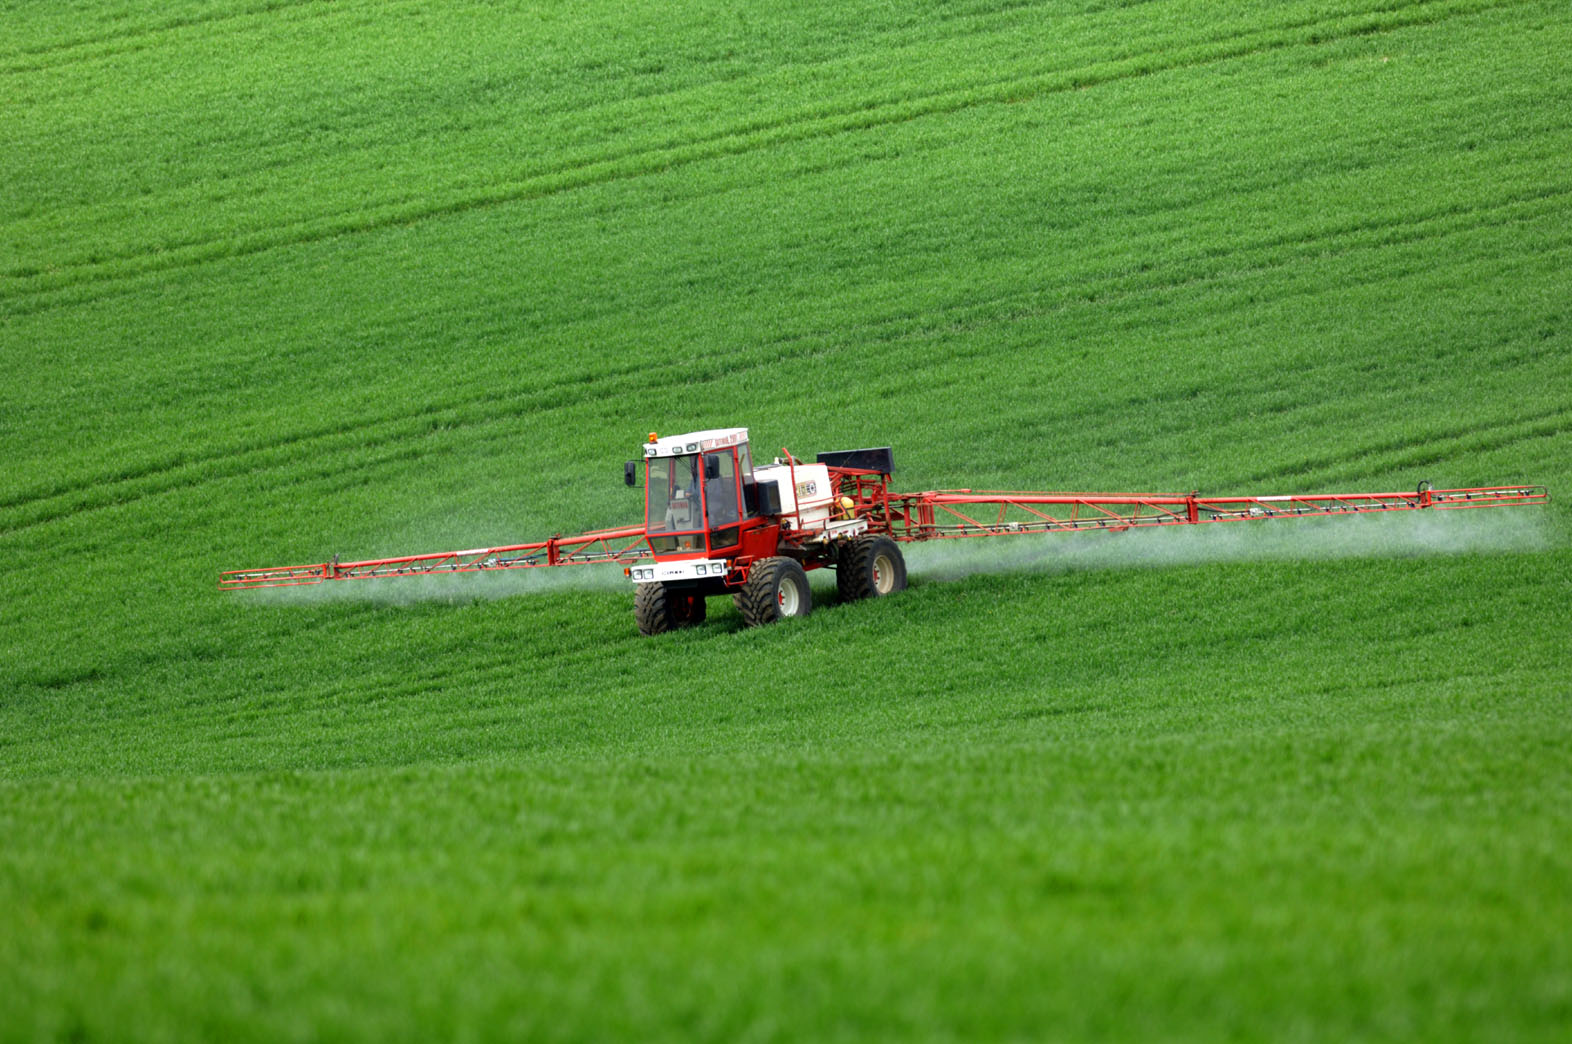 MEPs agree to phase out glyphosate within the next five years